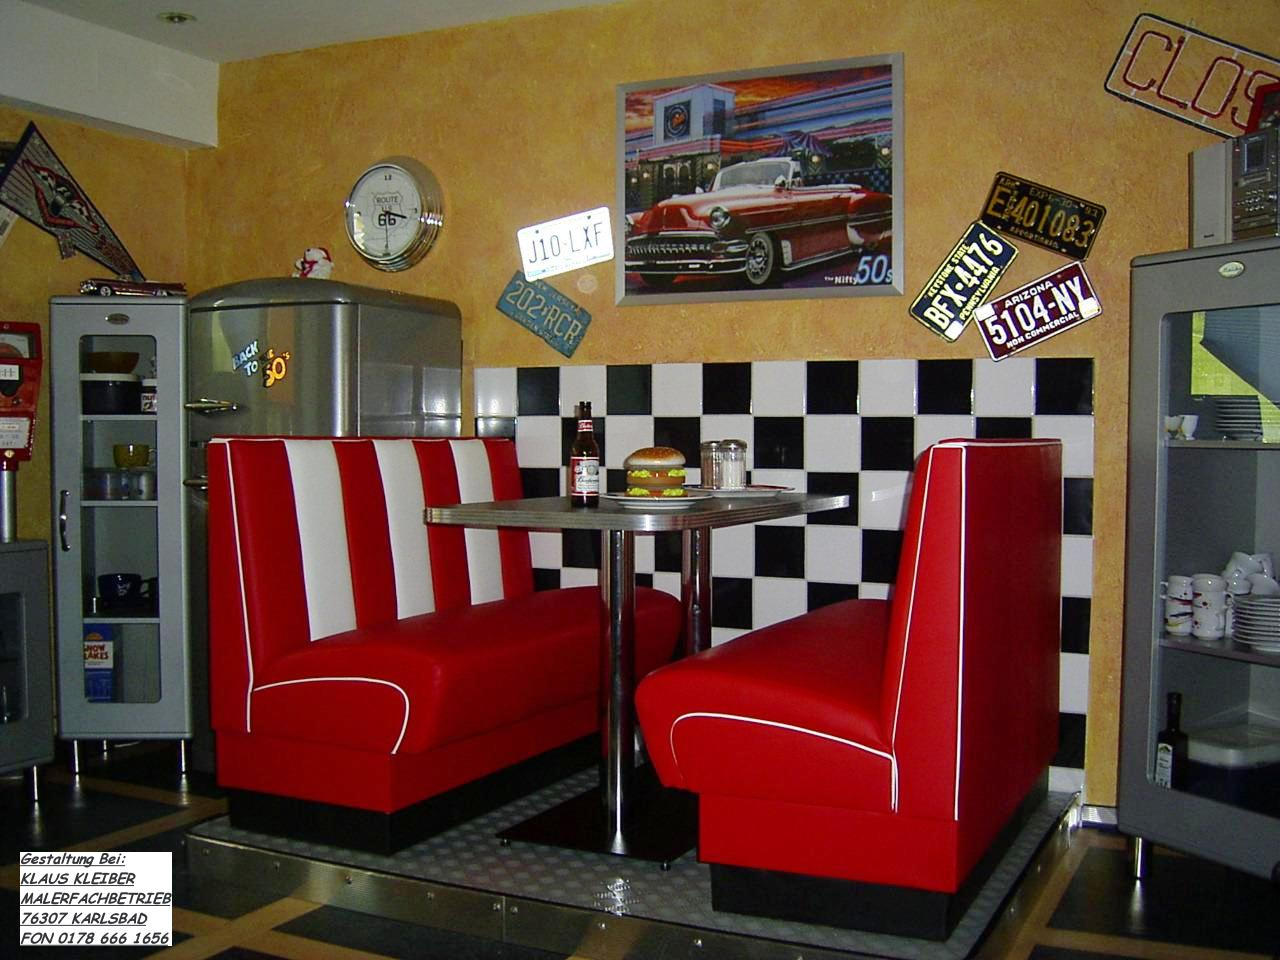 us telefon and diner booth cool stuff. Black Bedroom Furniture Sets. Home Design Ideas